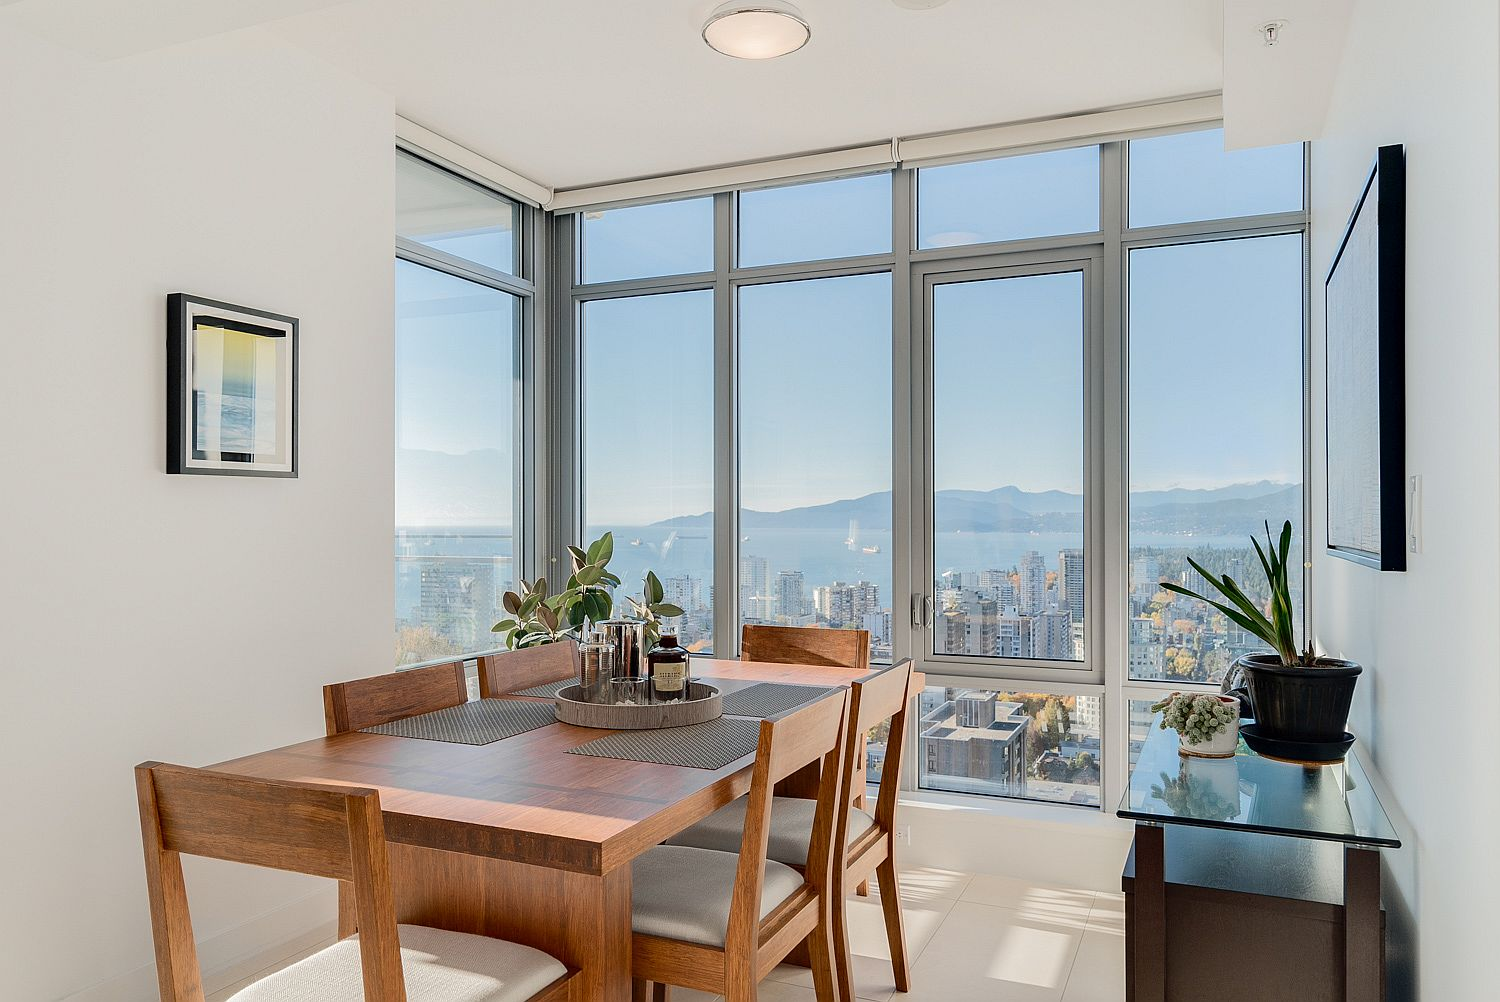 Dining room with stunning views of the mountains and the bay